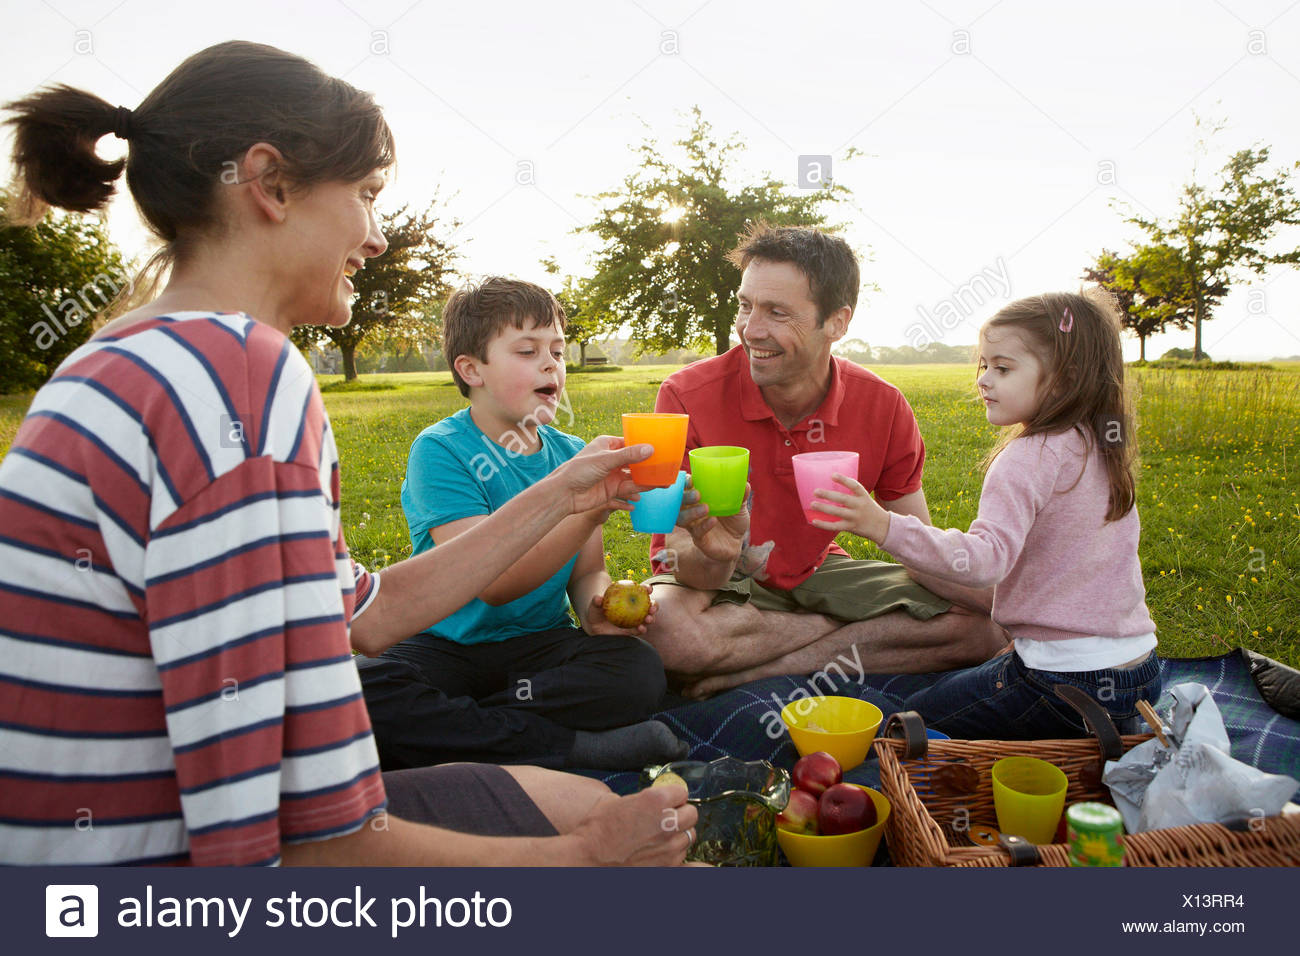 A family, two parents and two children outdoors in the summer having a picnic. - Stock Image